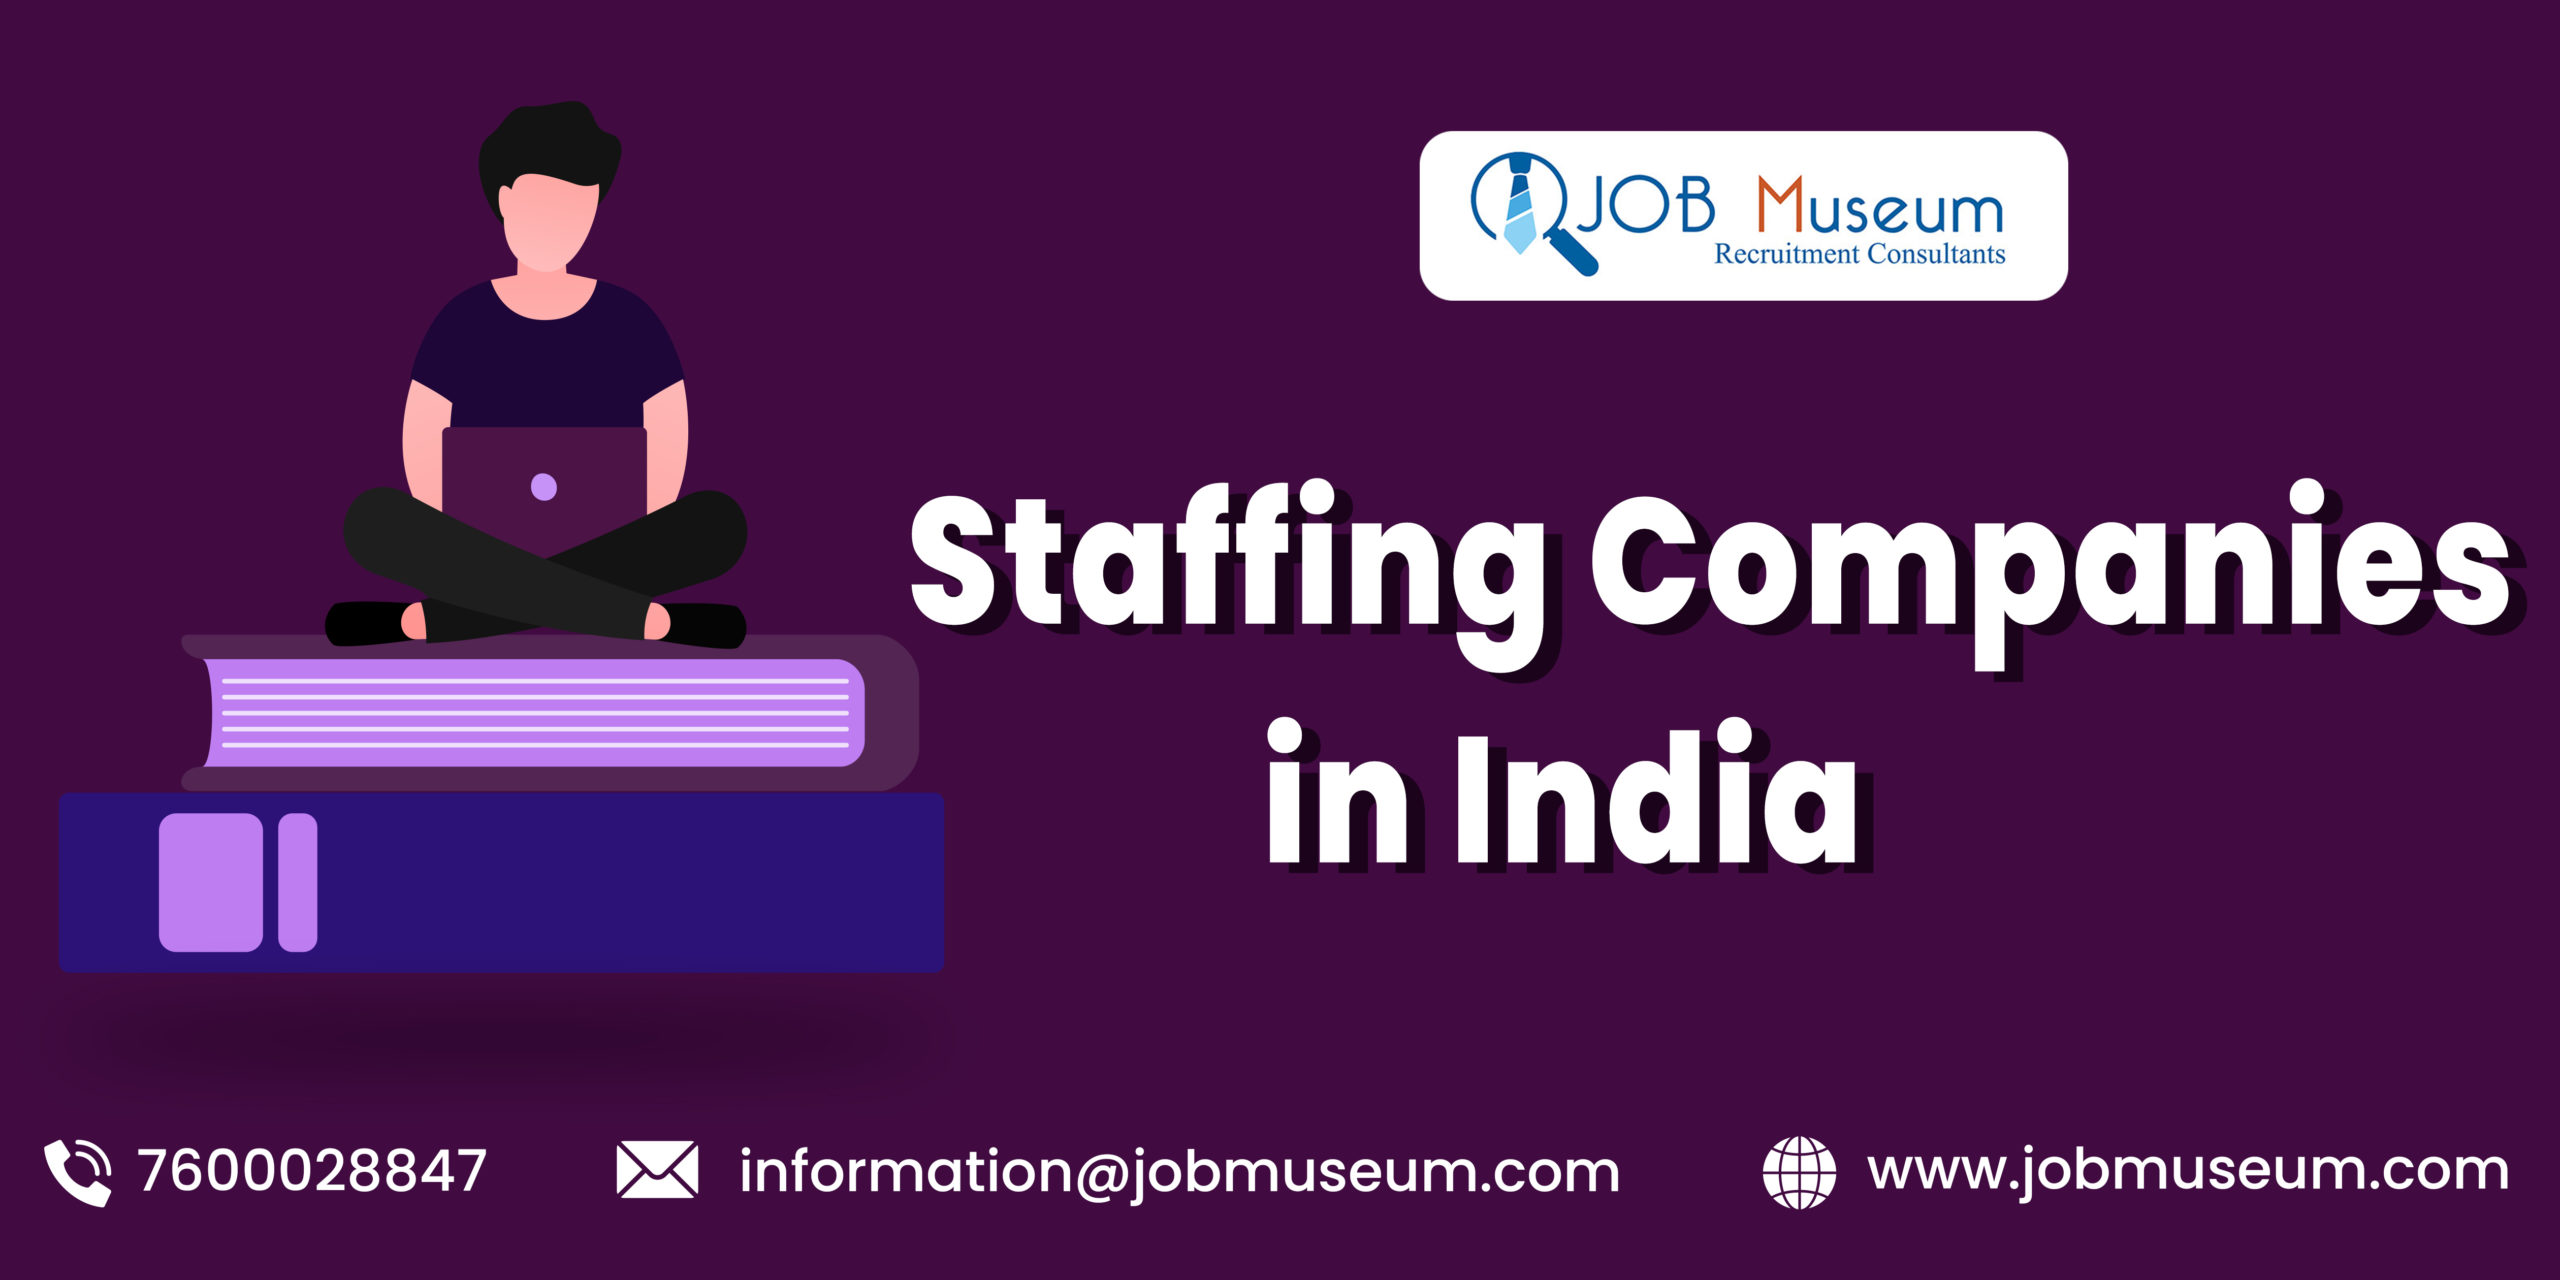 IT contract staffing companies in India